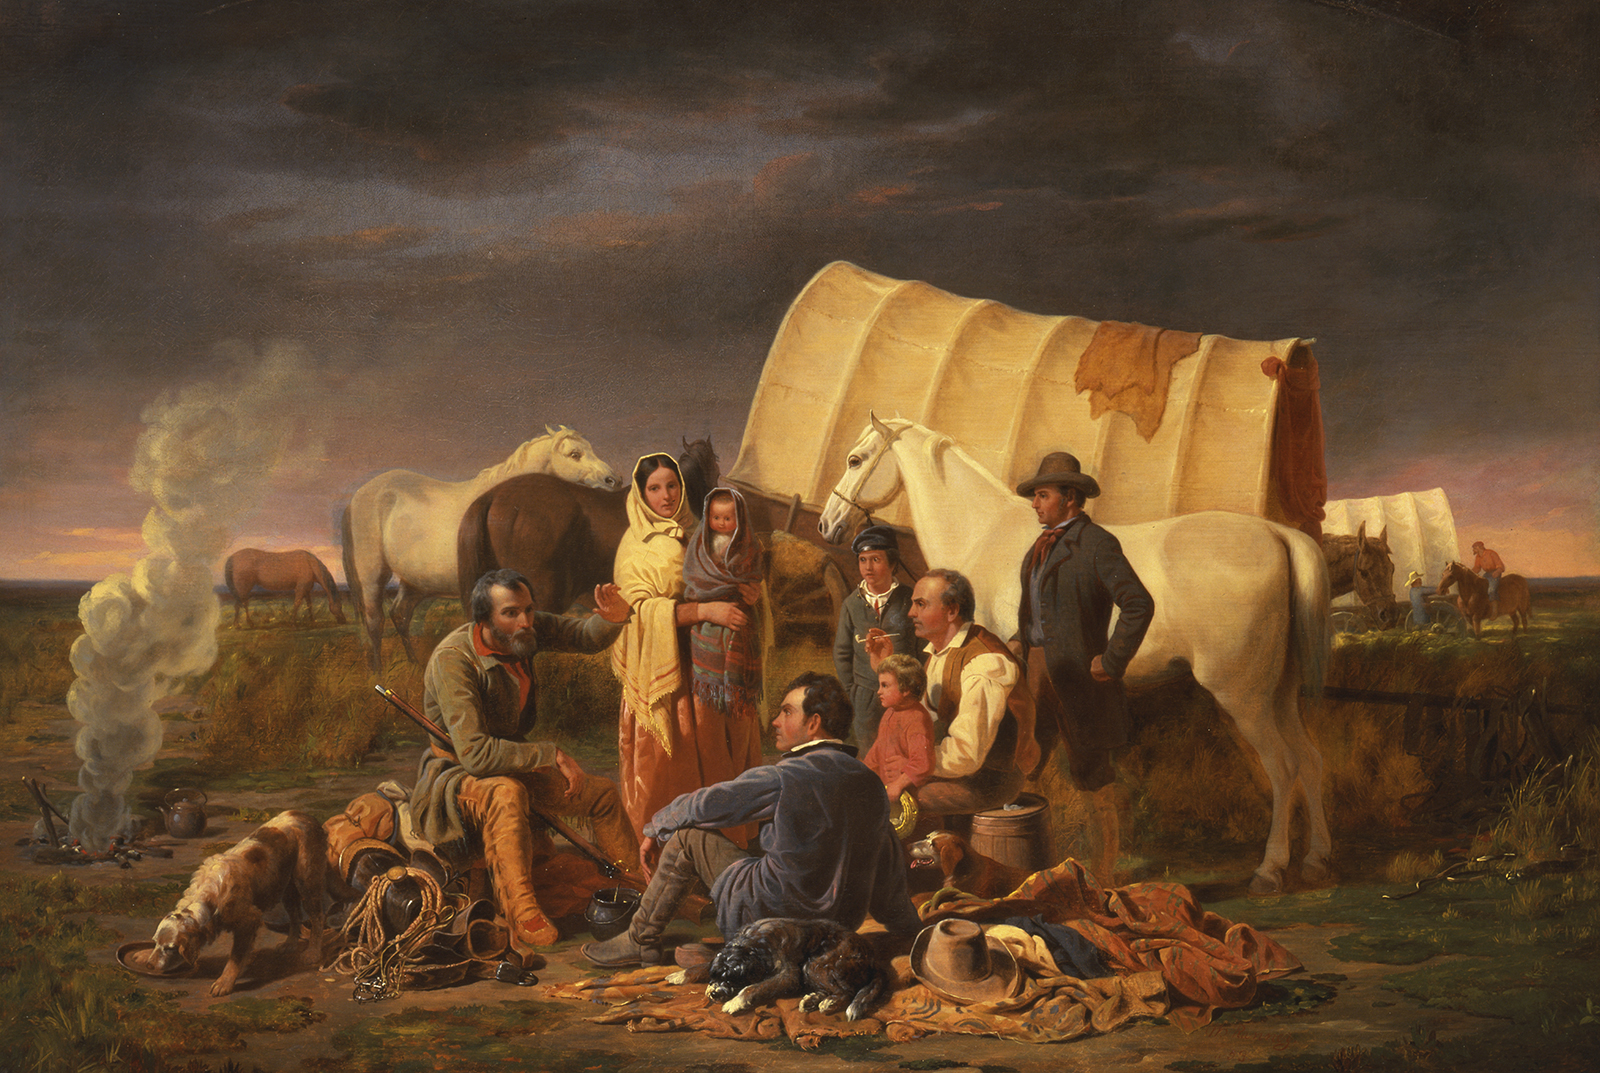 William Ranney (American, 1813-1857), Advice on the Prairie, 1853, oil on canvas 45.625 x 61.325 inches (frame), Buffalo Bill Center of the West, Cody, Wyoming, USA, gift of Mrs. J. Maxwell Moran, 10.91